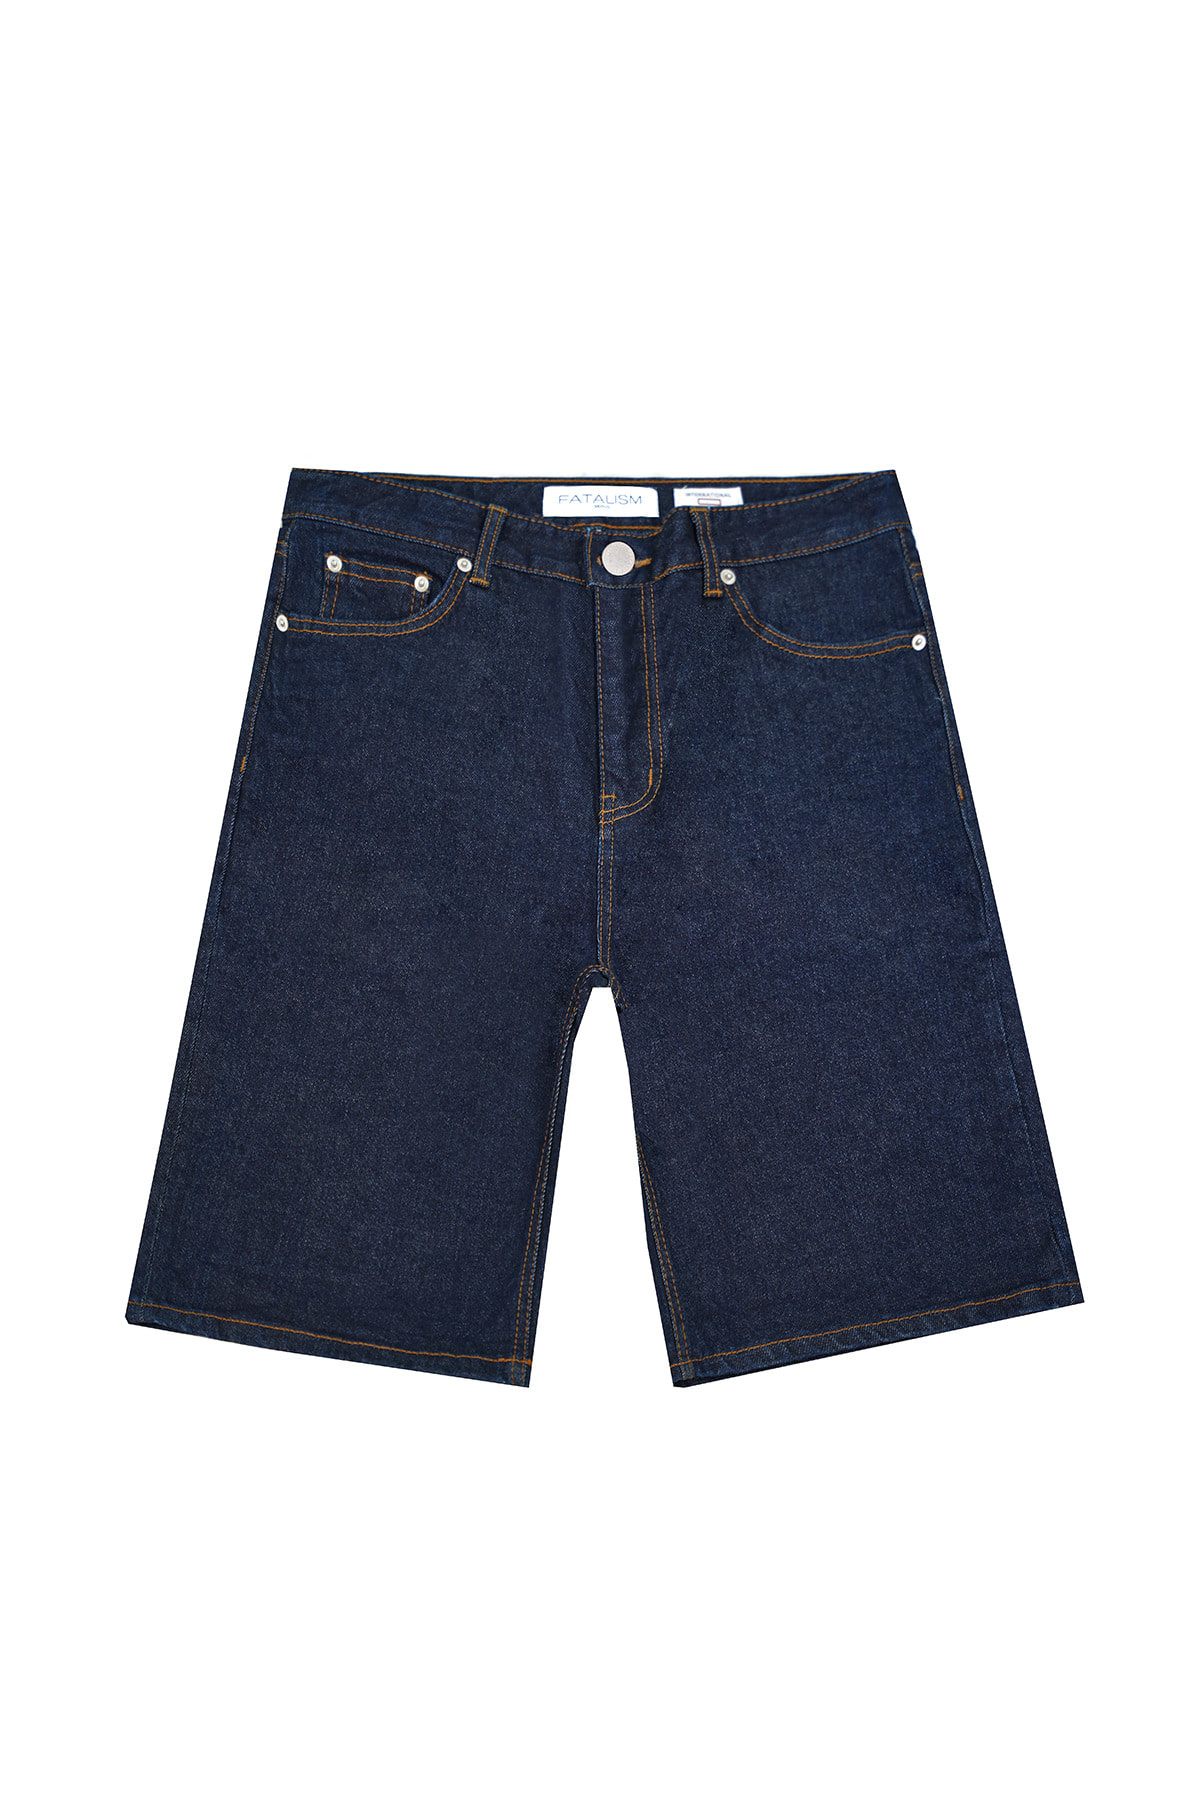 #0144 indigo standard short pants